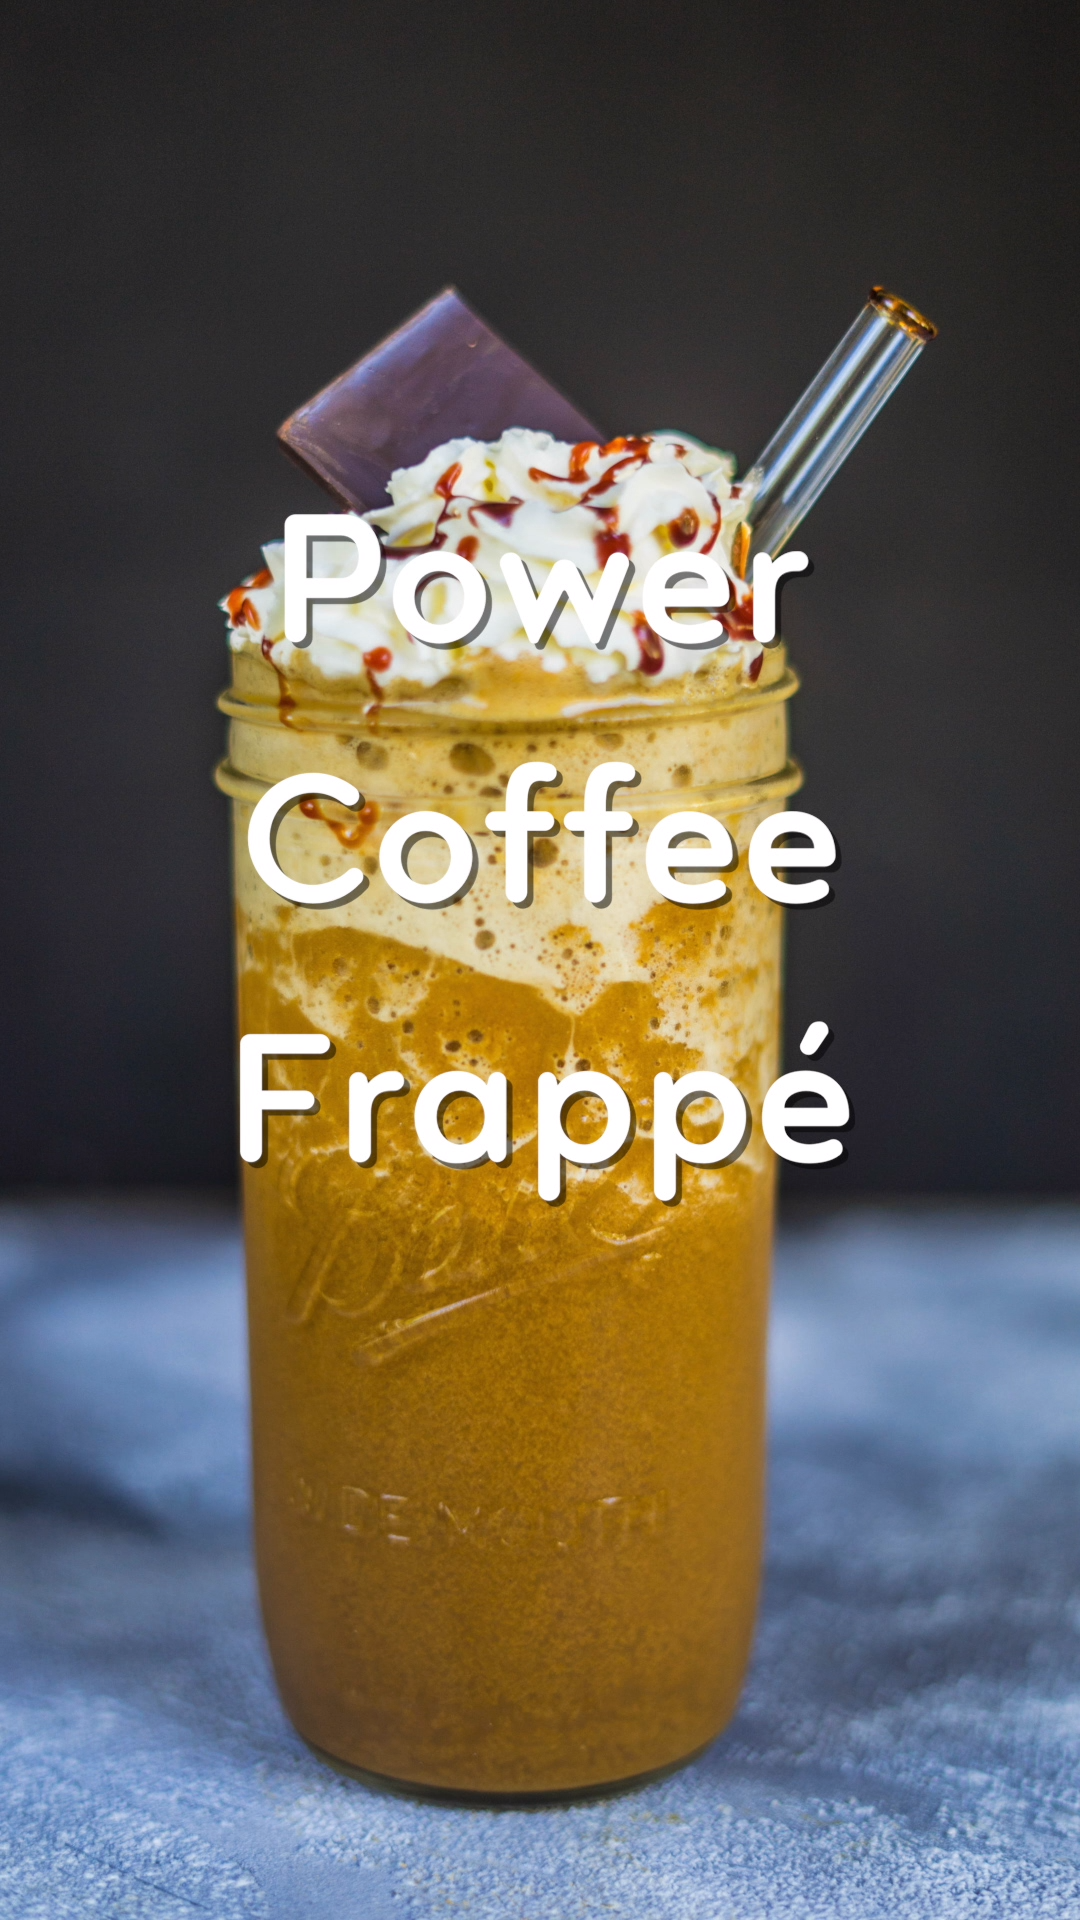 Power Coffee Frappé